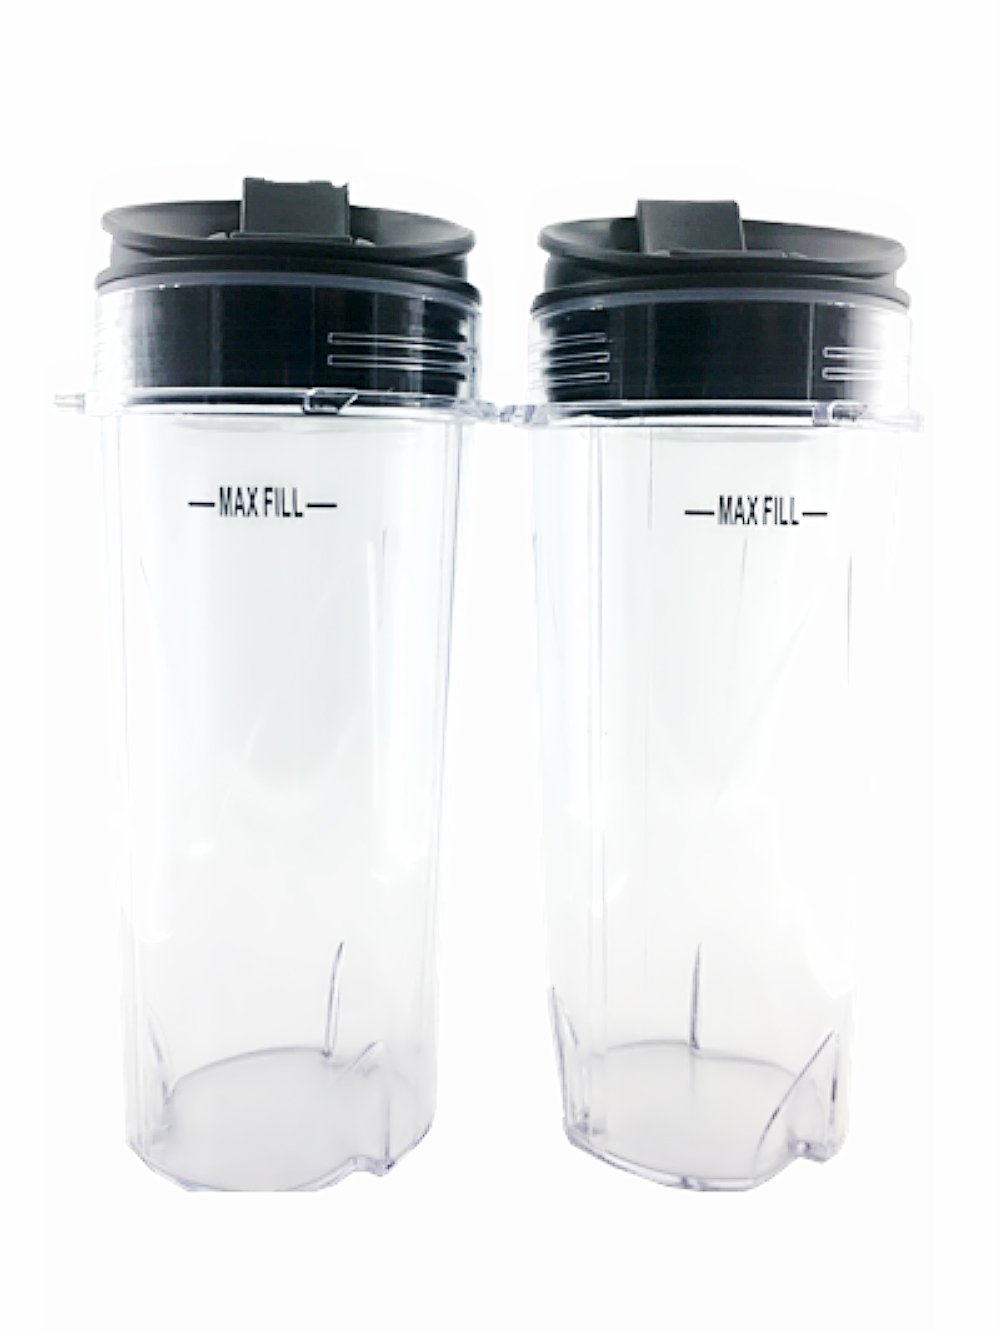 Sduck Replacement Parts for Nutri Ninja, Two Pack 16 oz. Cups and Sip with Seal Lids Fit for Ultima & Professional Nutri Ninja Series BL770 BL780 BL660 All Pro 4 Tab Blenders